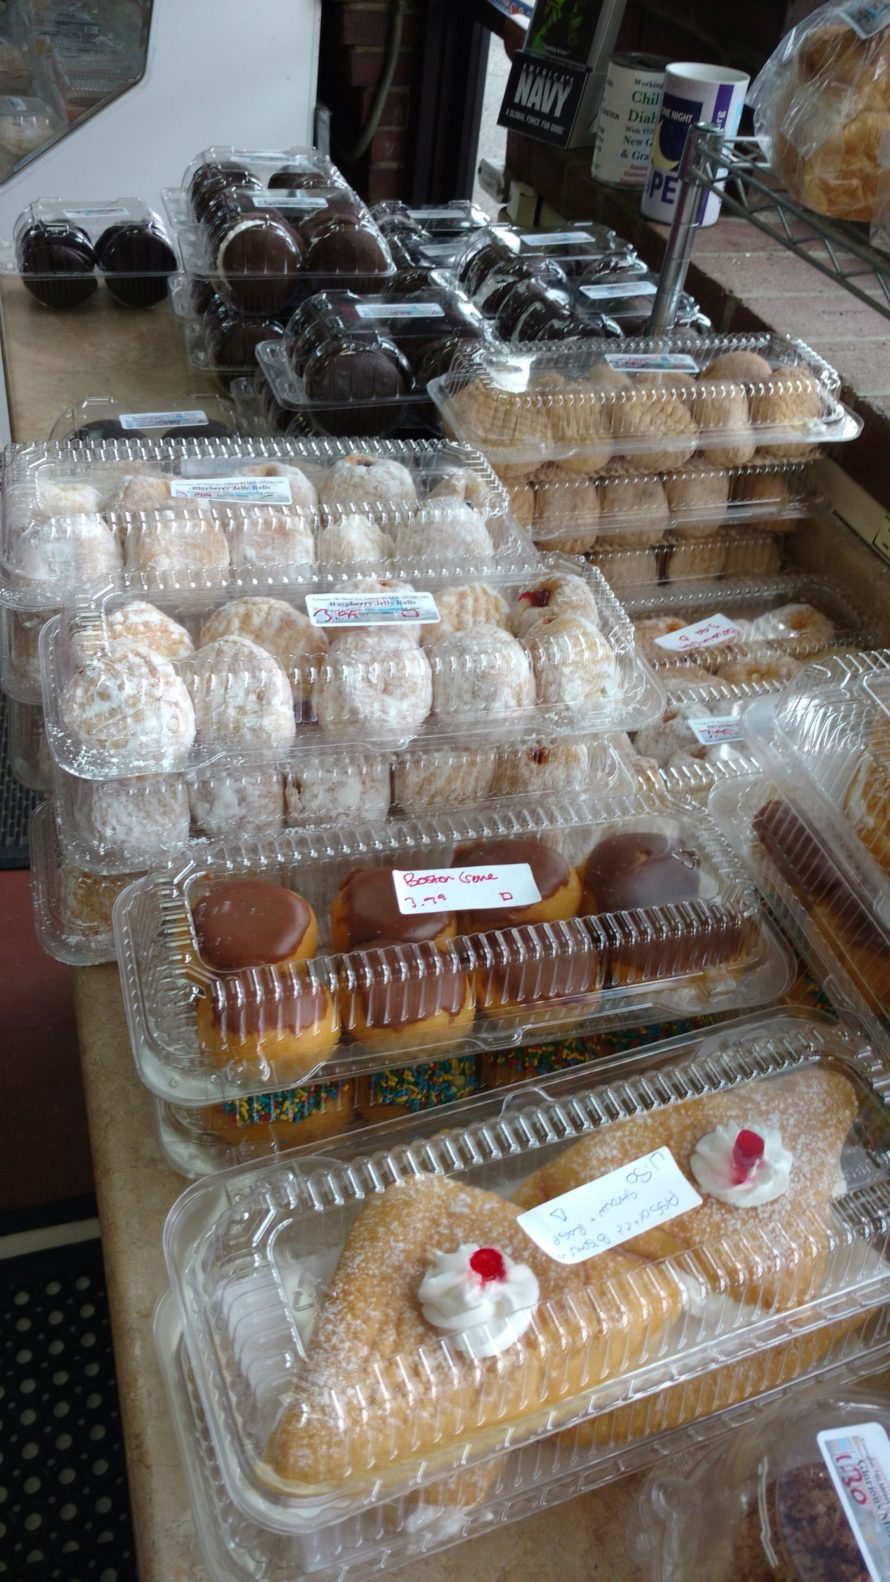 Donuts and other pastries: Georgio's Pizza & Donut Shop.